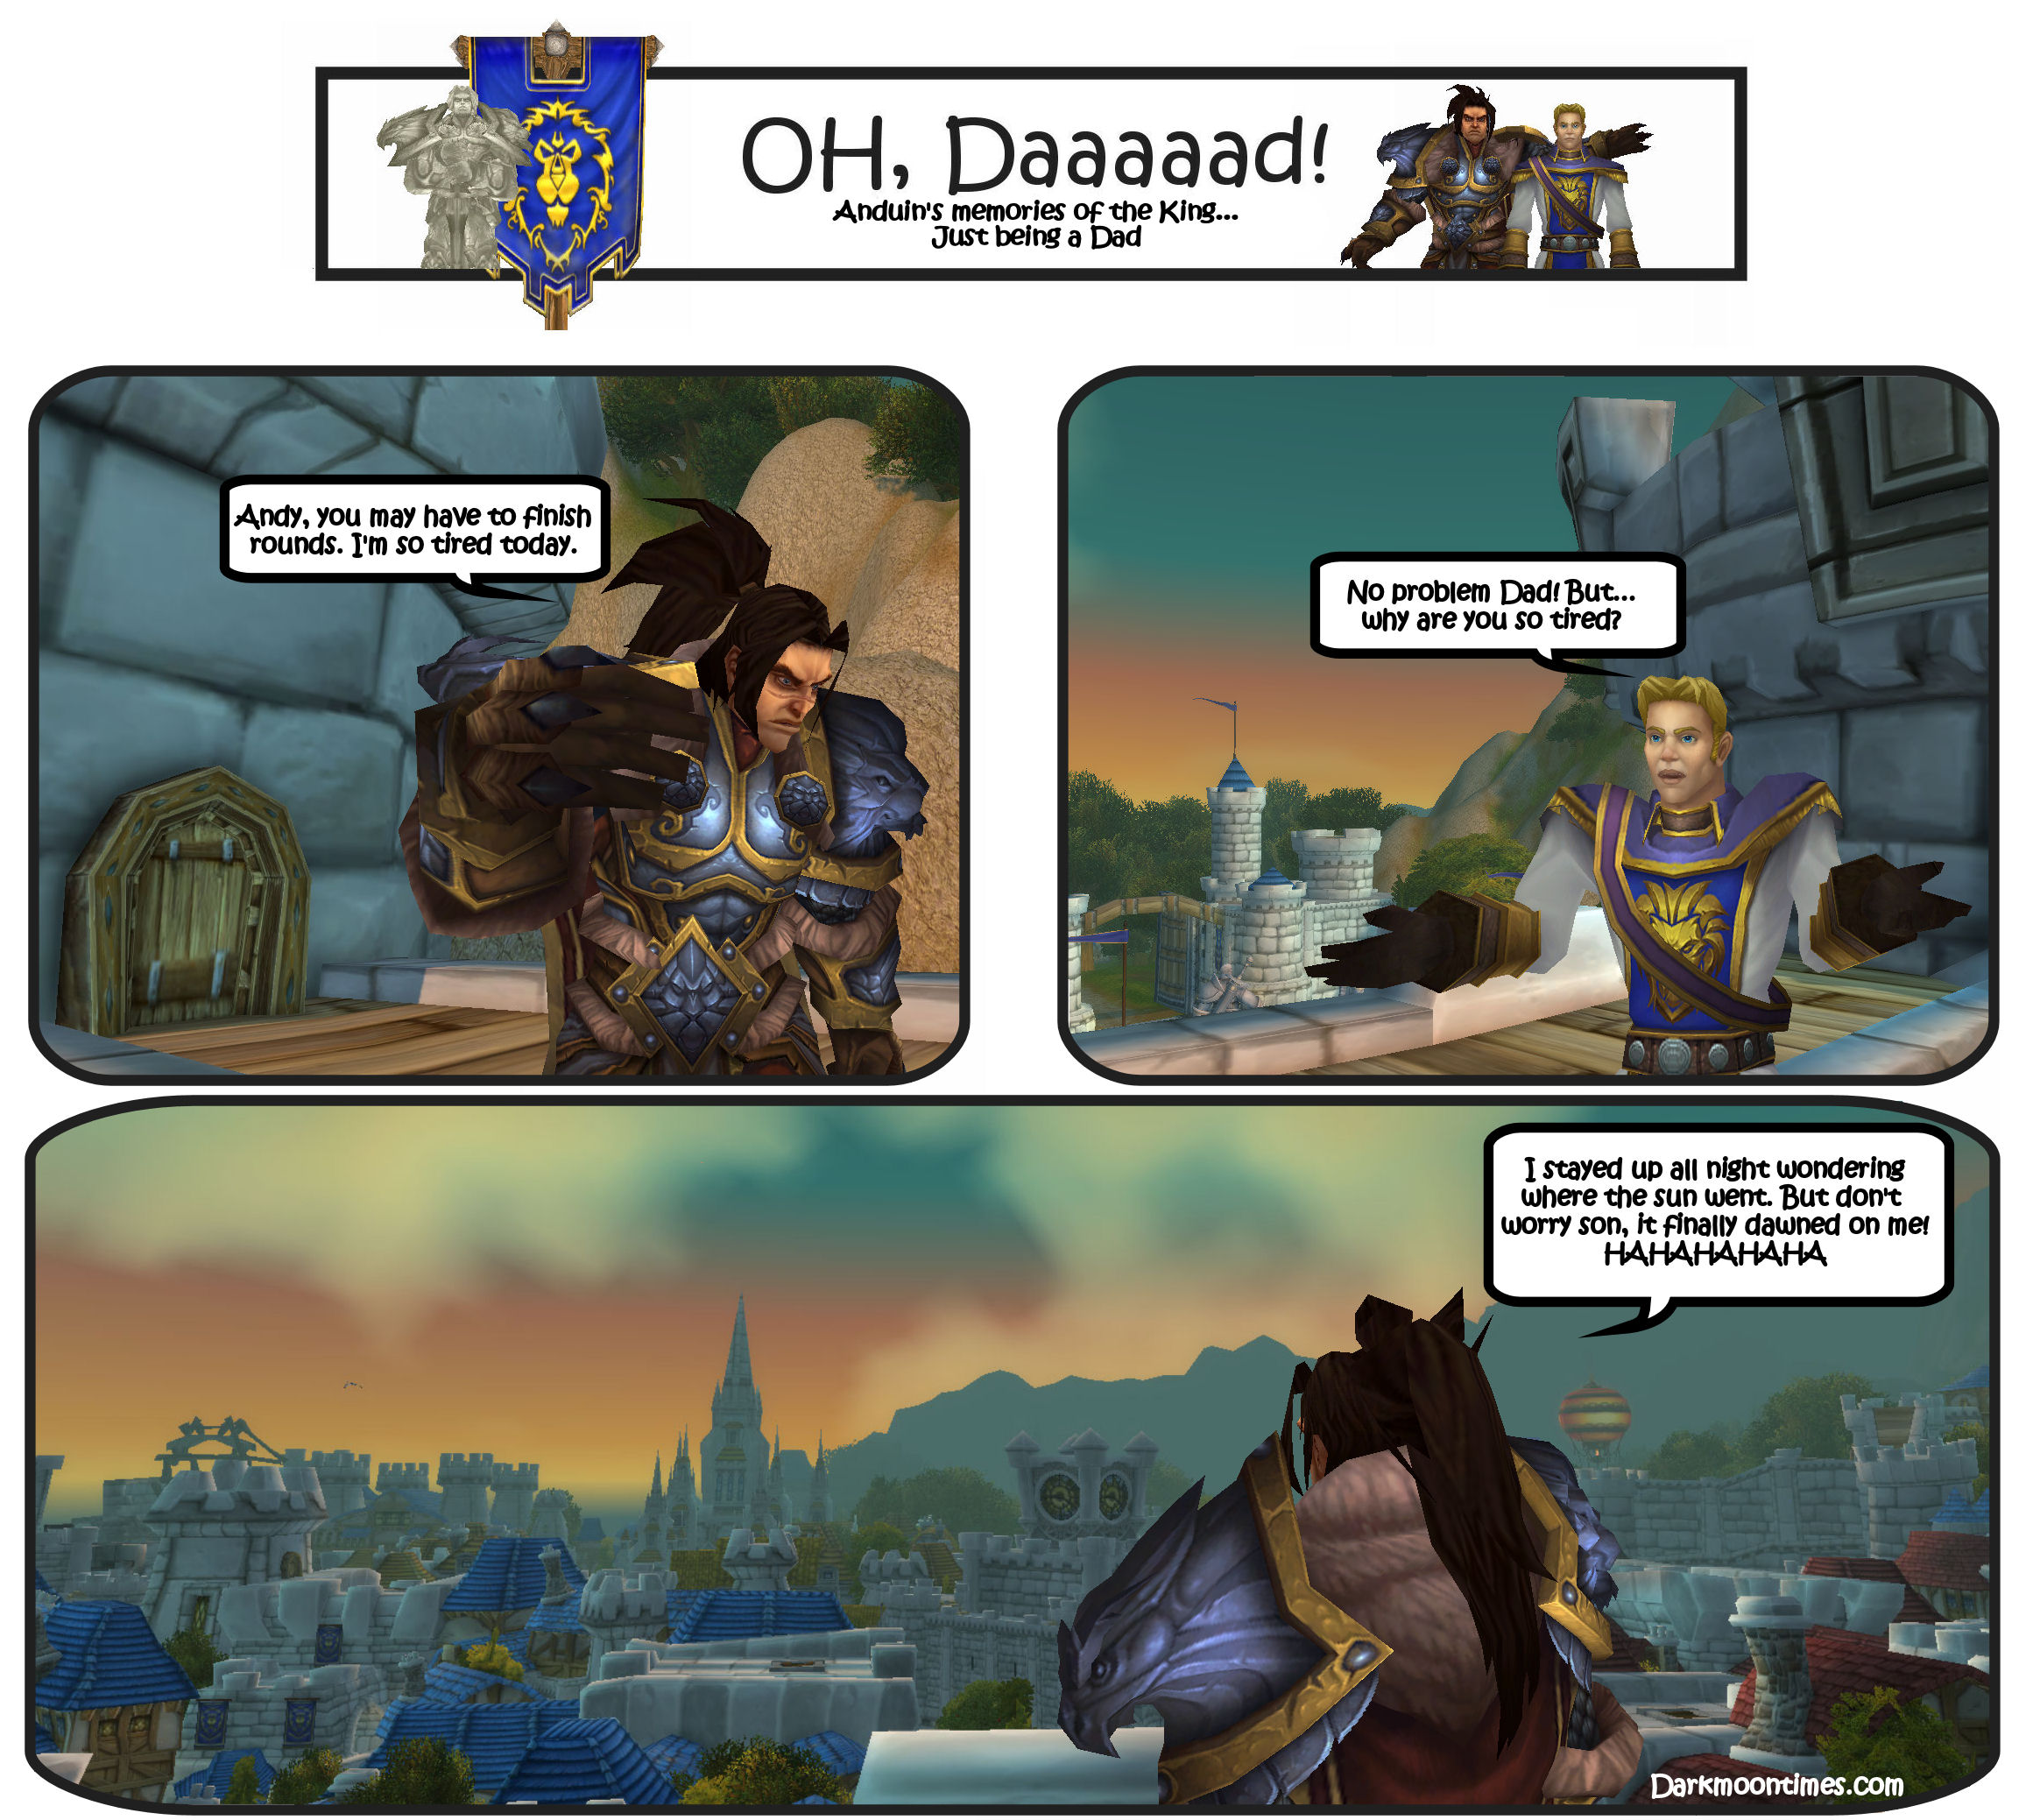 """King Varian telling Anduin a dad joke """"I stayed up all night wondering where the sun went. Don't worry, it dawned on me"""""""